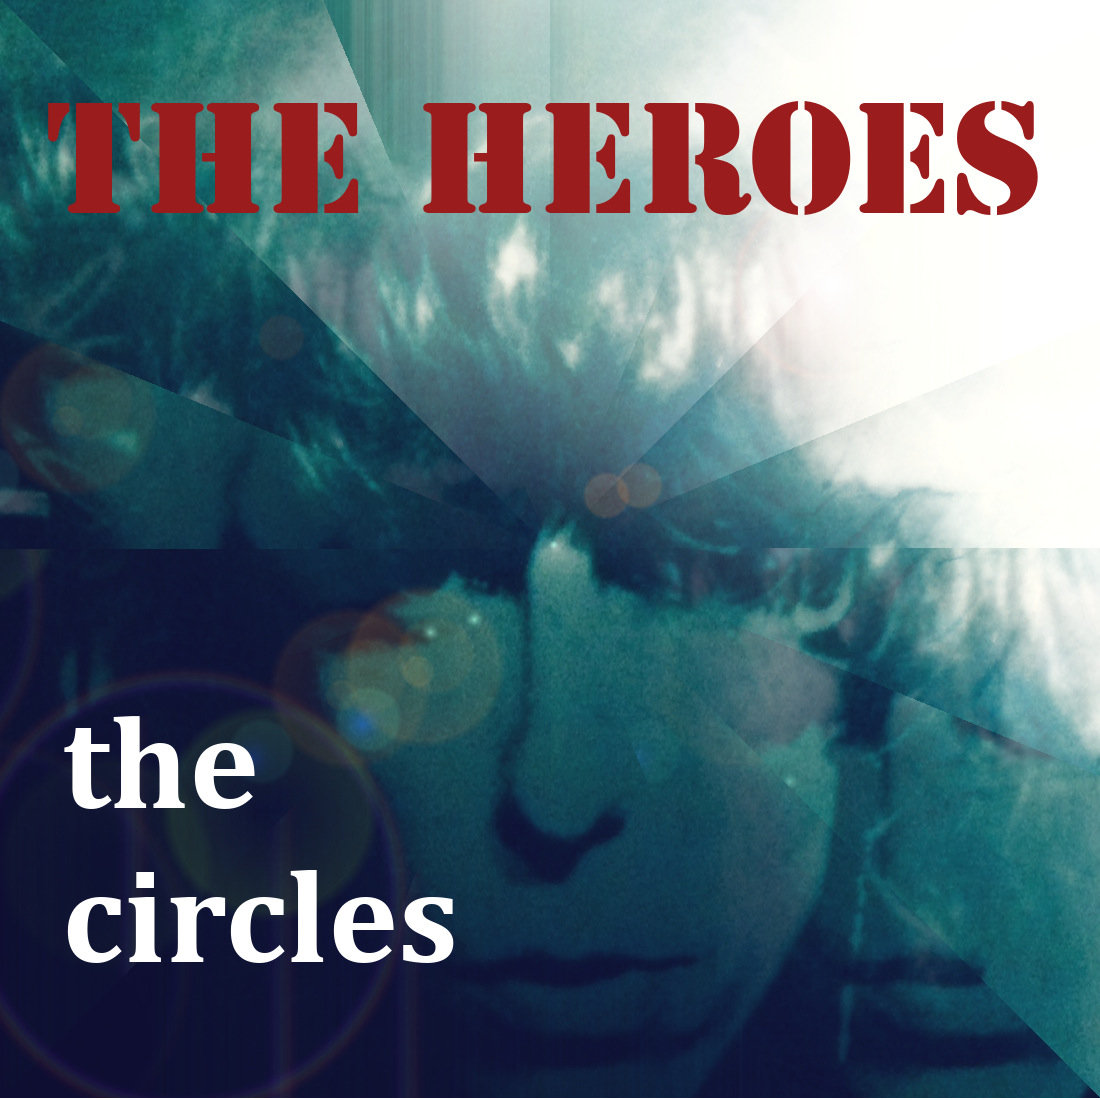 https://chrisbradford.bandcamp.com/track/the-circles-single